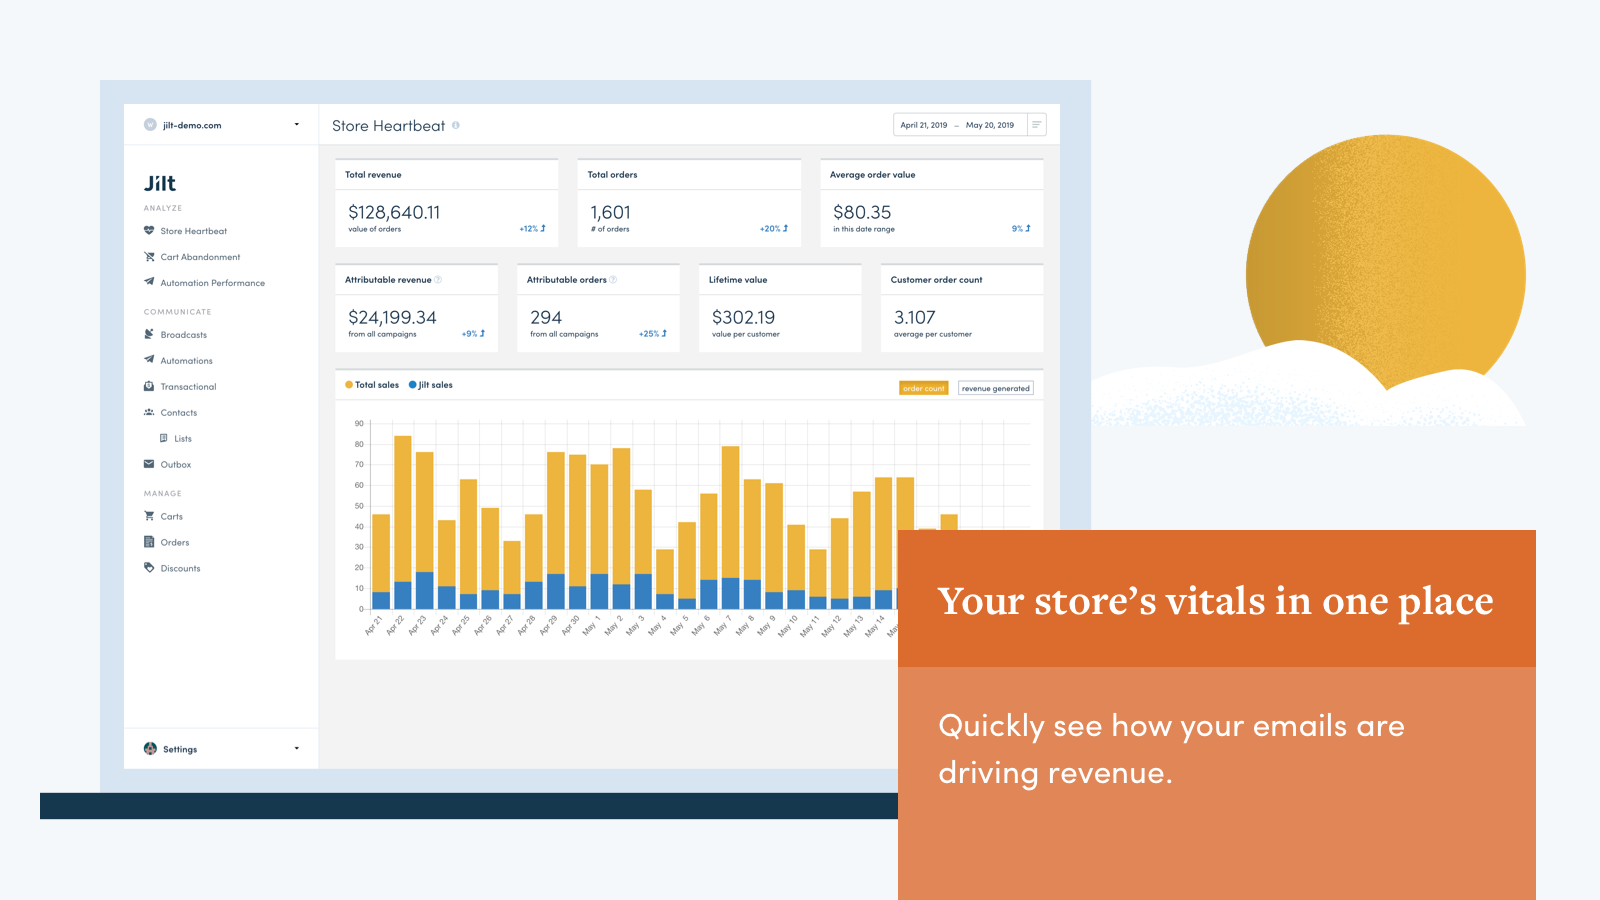 Quickly see how your emails are driving revenue